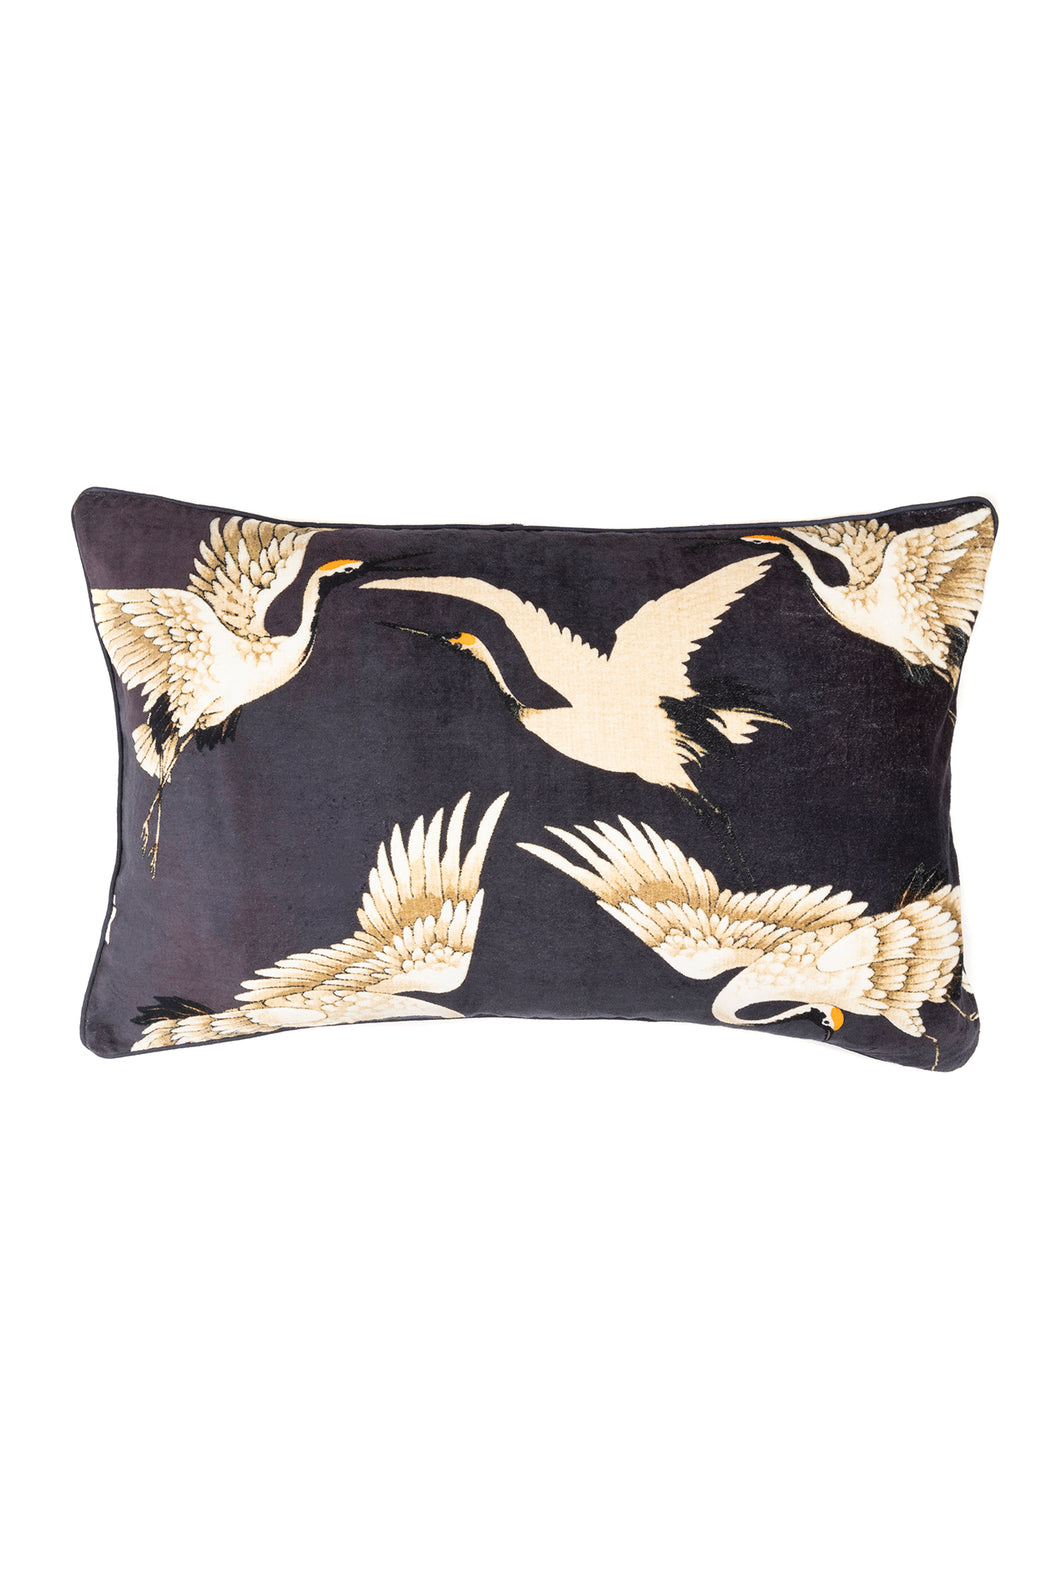 Stork Cushion - Charcoal - LilyKing